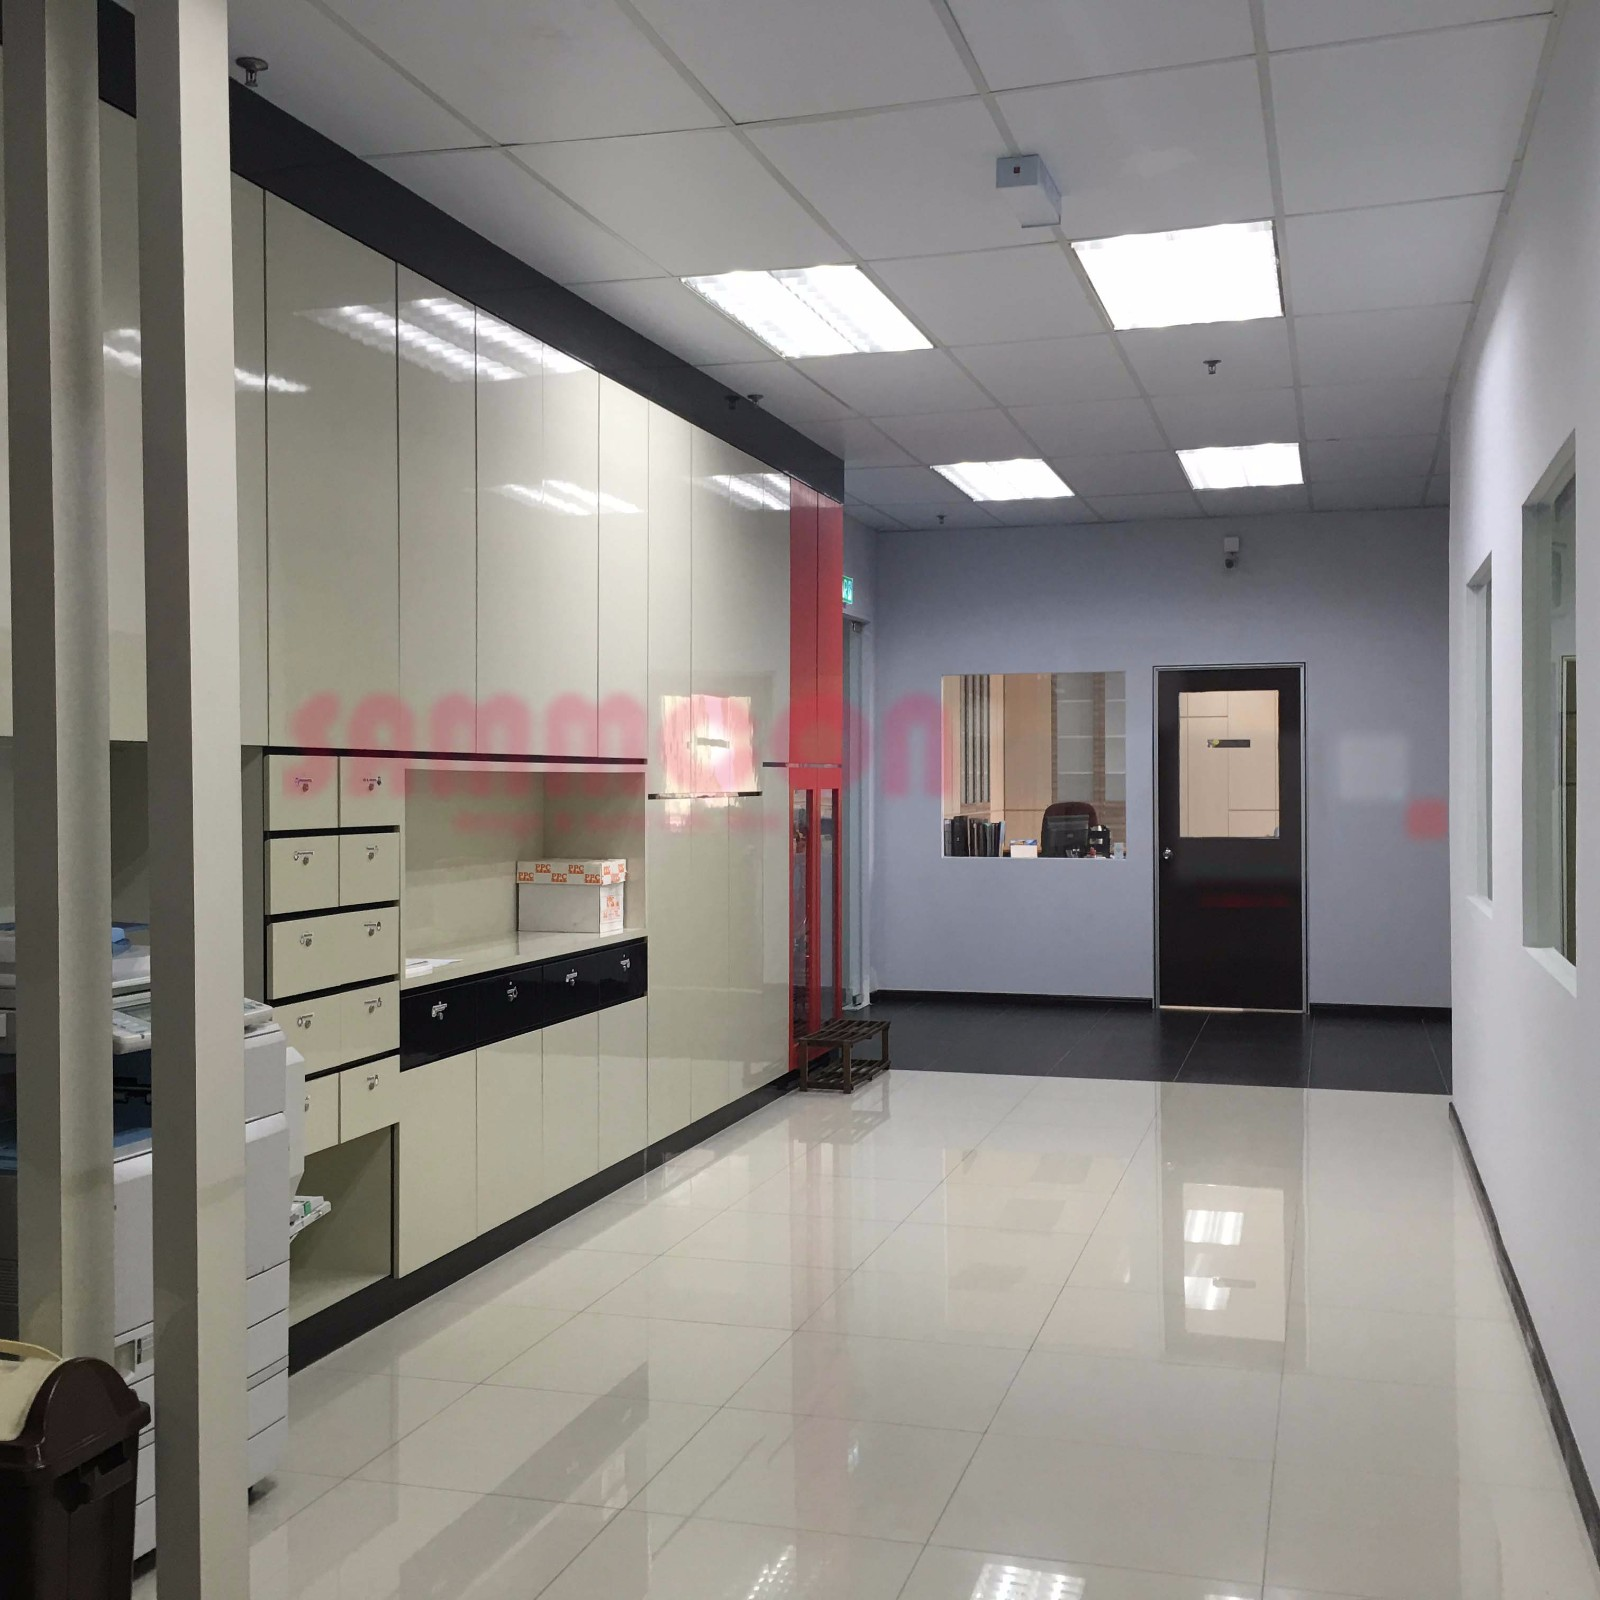 Interior Design Johor Bahru (JB) - Office decoration and renovation